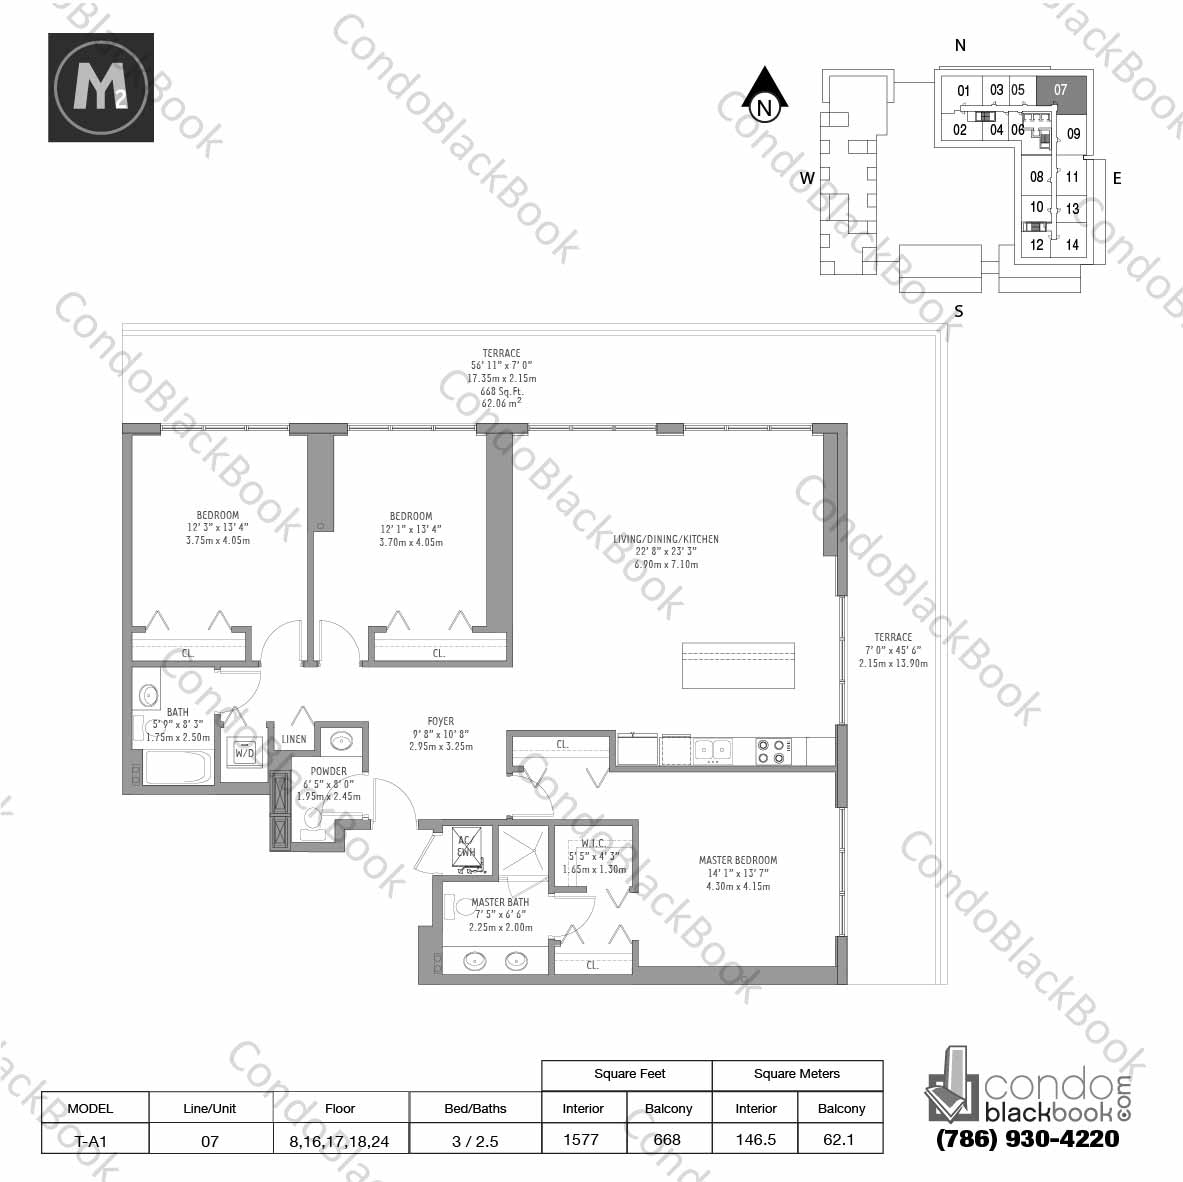 Floor plan for Midtown 2 Midtown Miami, model T-A1, line 07, 3 / 2.5 bedrooms, 1577 sq ft